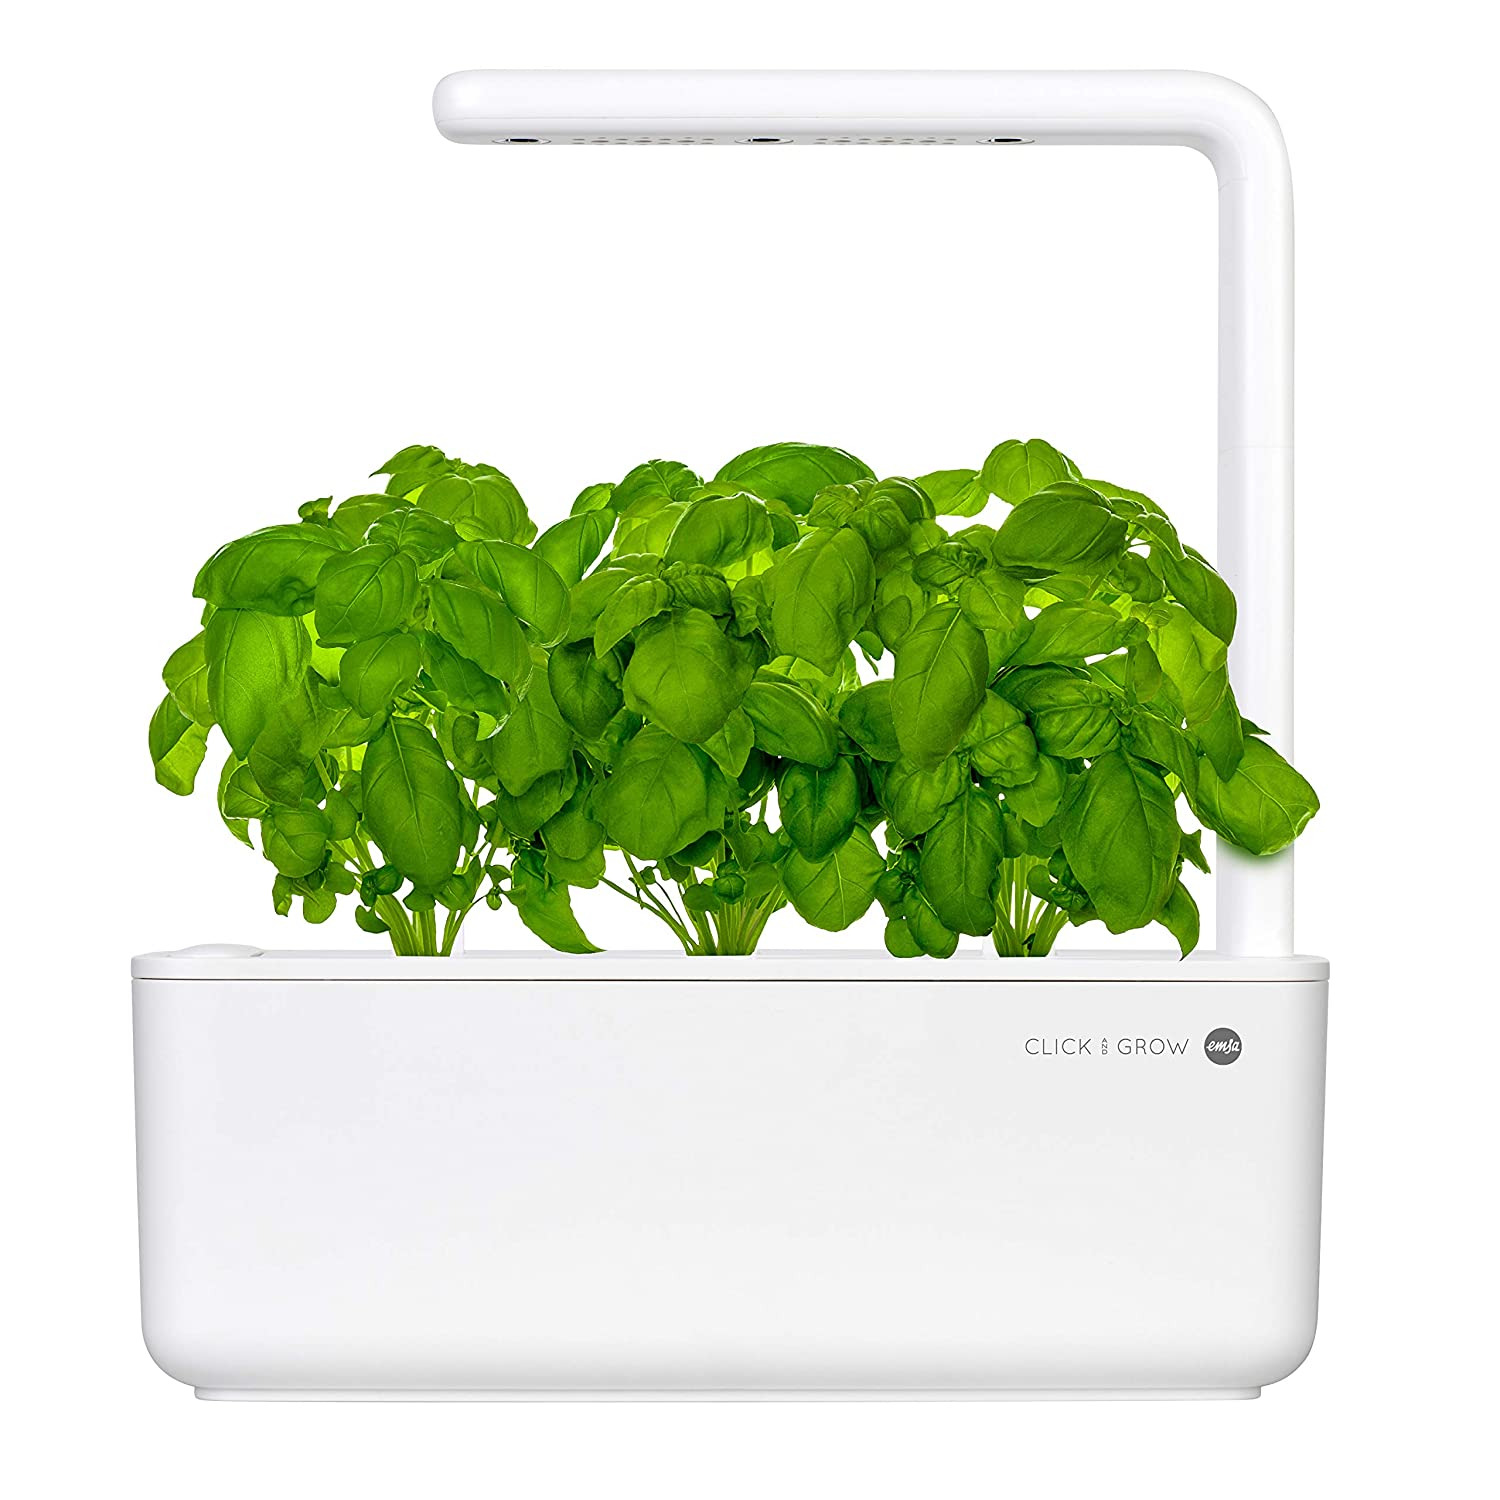 emsa Click & Grow Smart Garden Indoorgarten